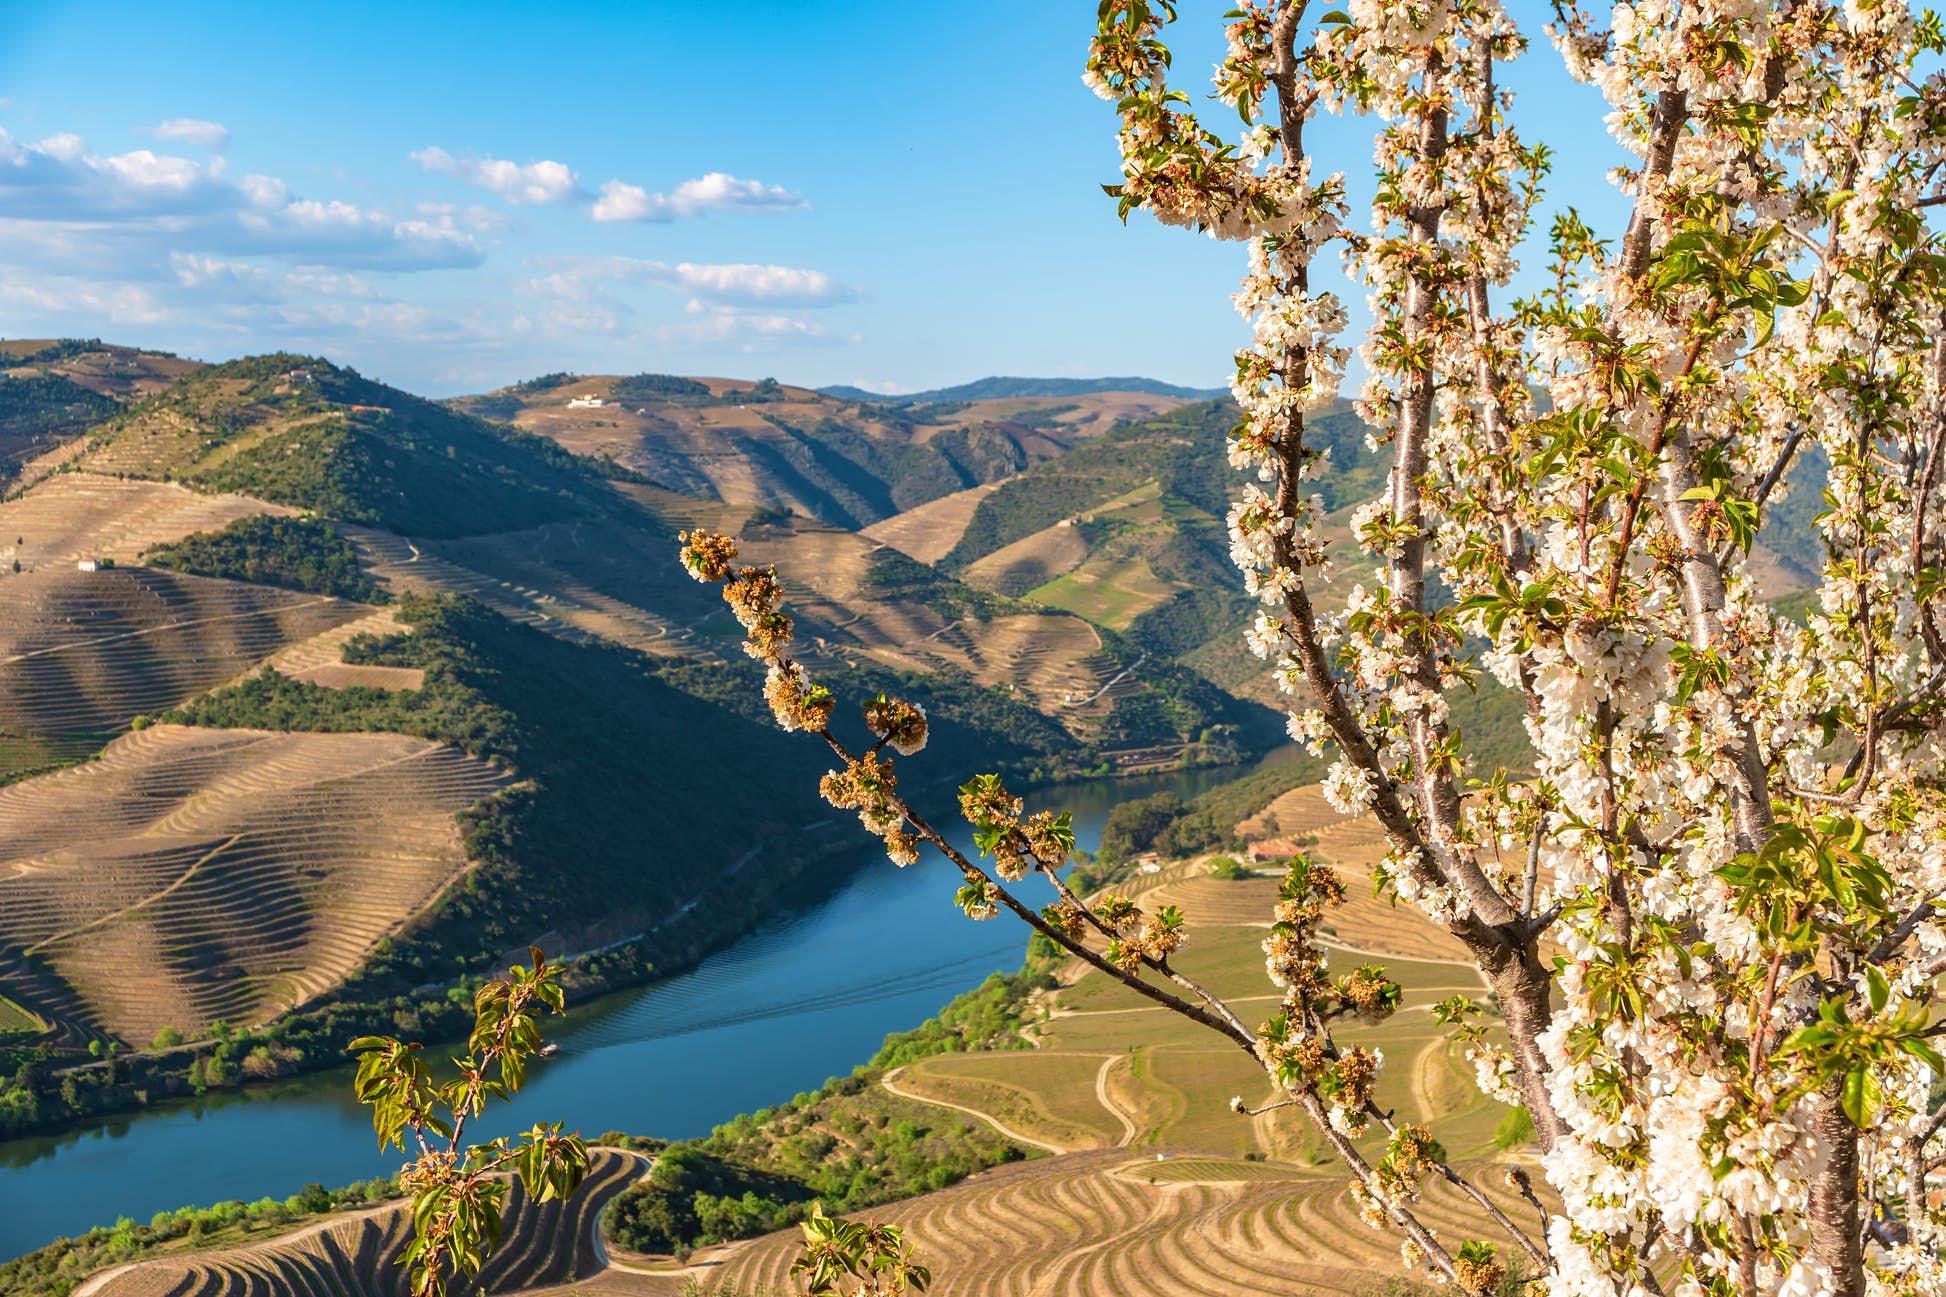 Nothing but picturesque views and small crowds in the Douro Valley © AnaMOMarques Getty Images / iStockphoto